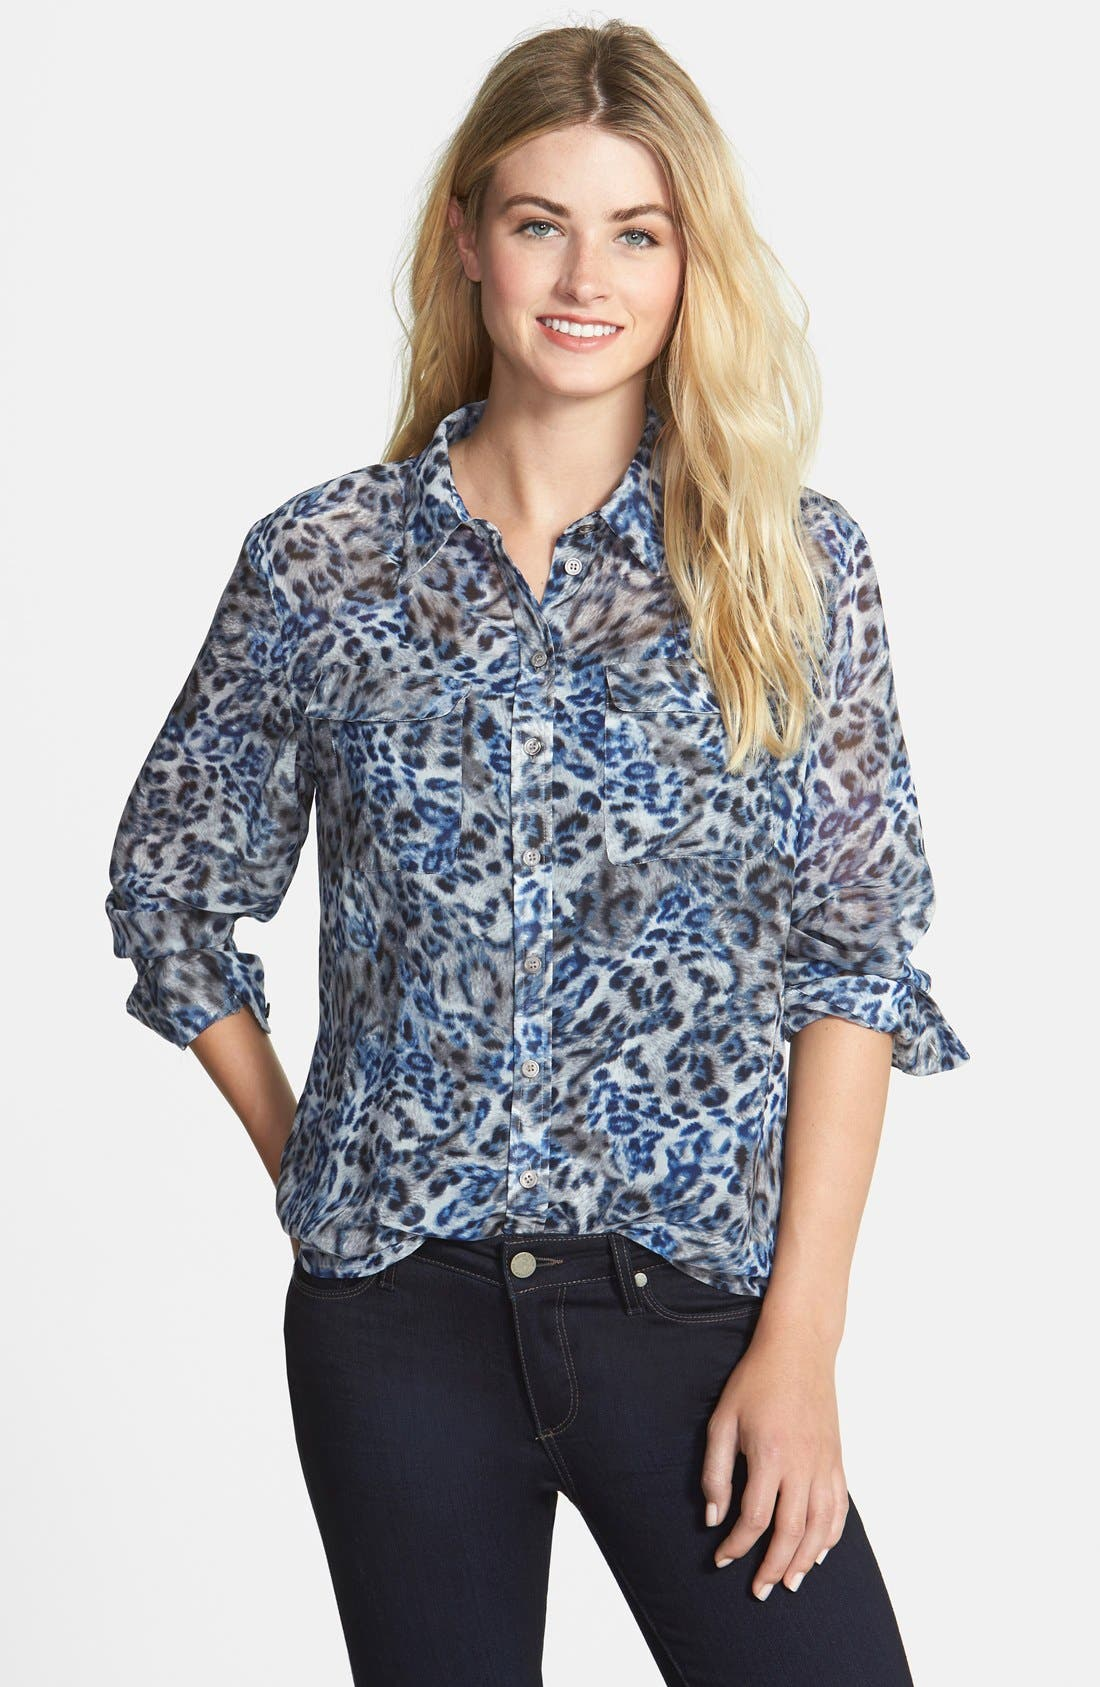 Main Image - Two by Vince Camuto Leopard Print Utility Blouse